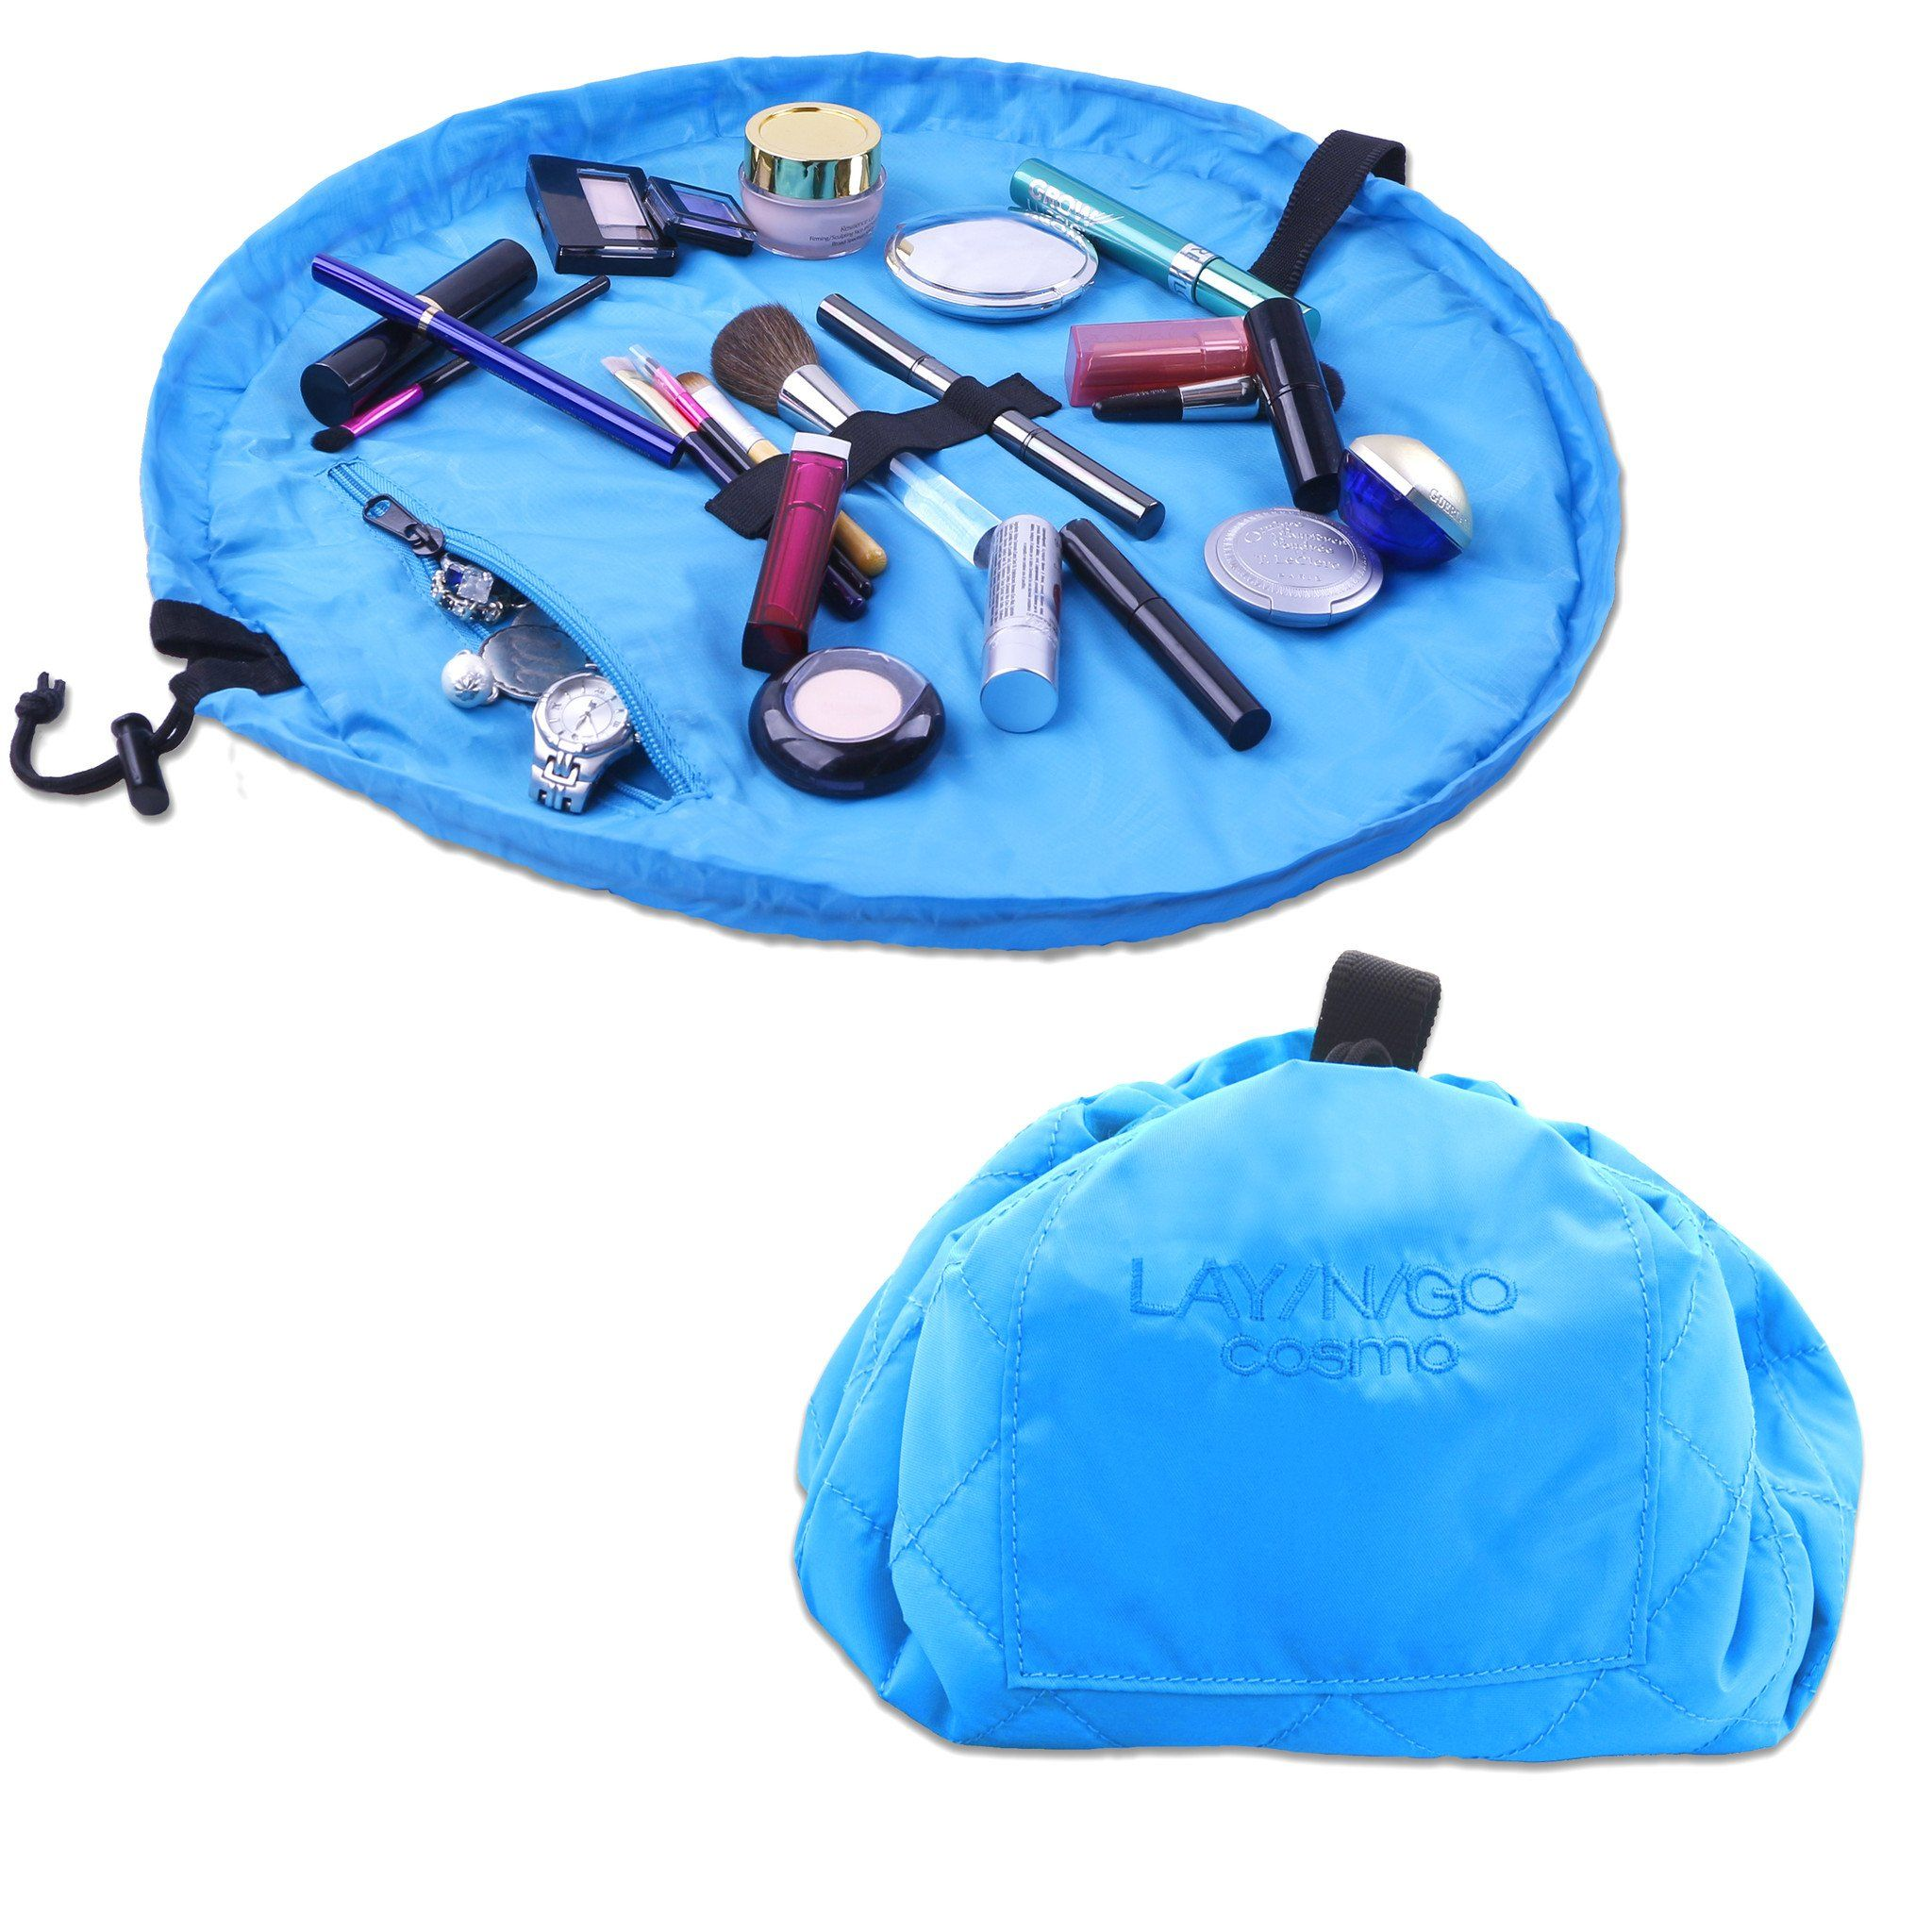 """LaynGo COSMO (20"""") Blue Makeup bags travel, Cosmetic"""